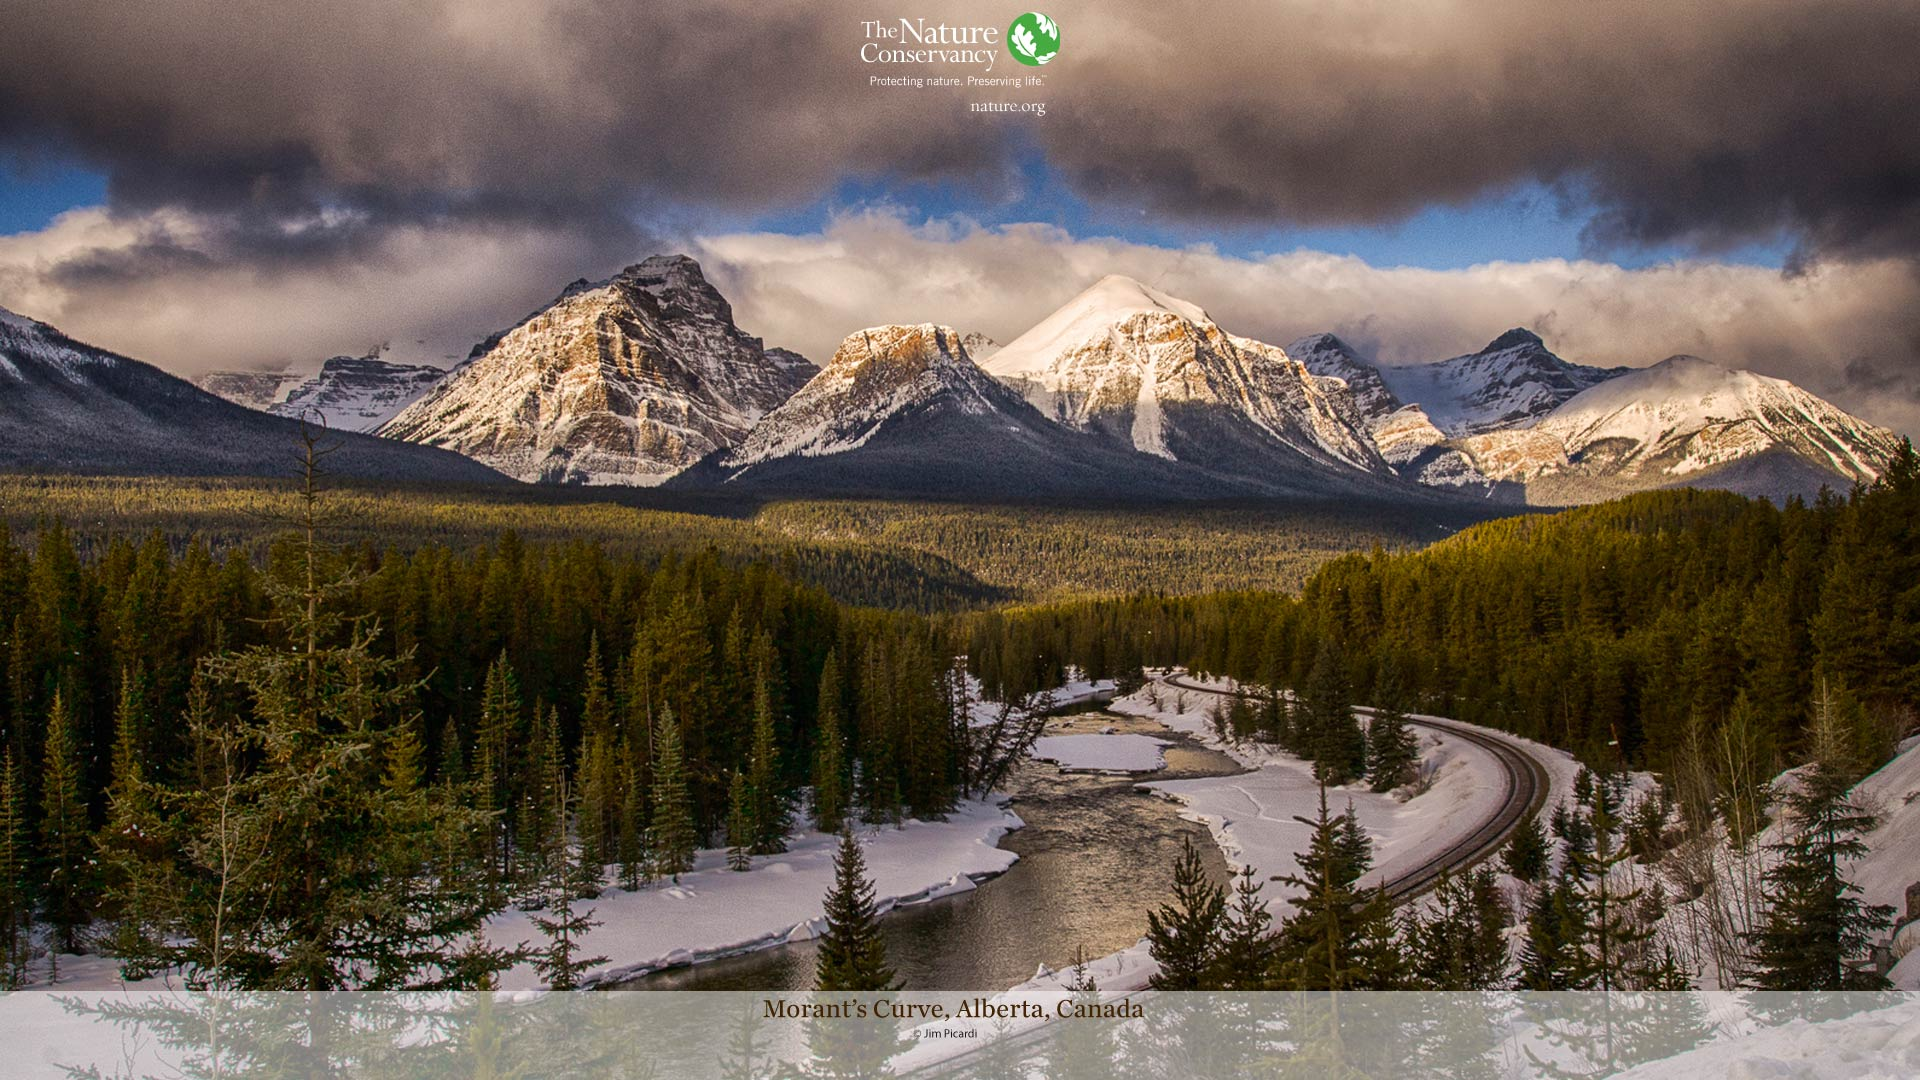 Nature Photo of the Month Desktop Wallpaper | The Nature Conservancy